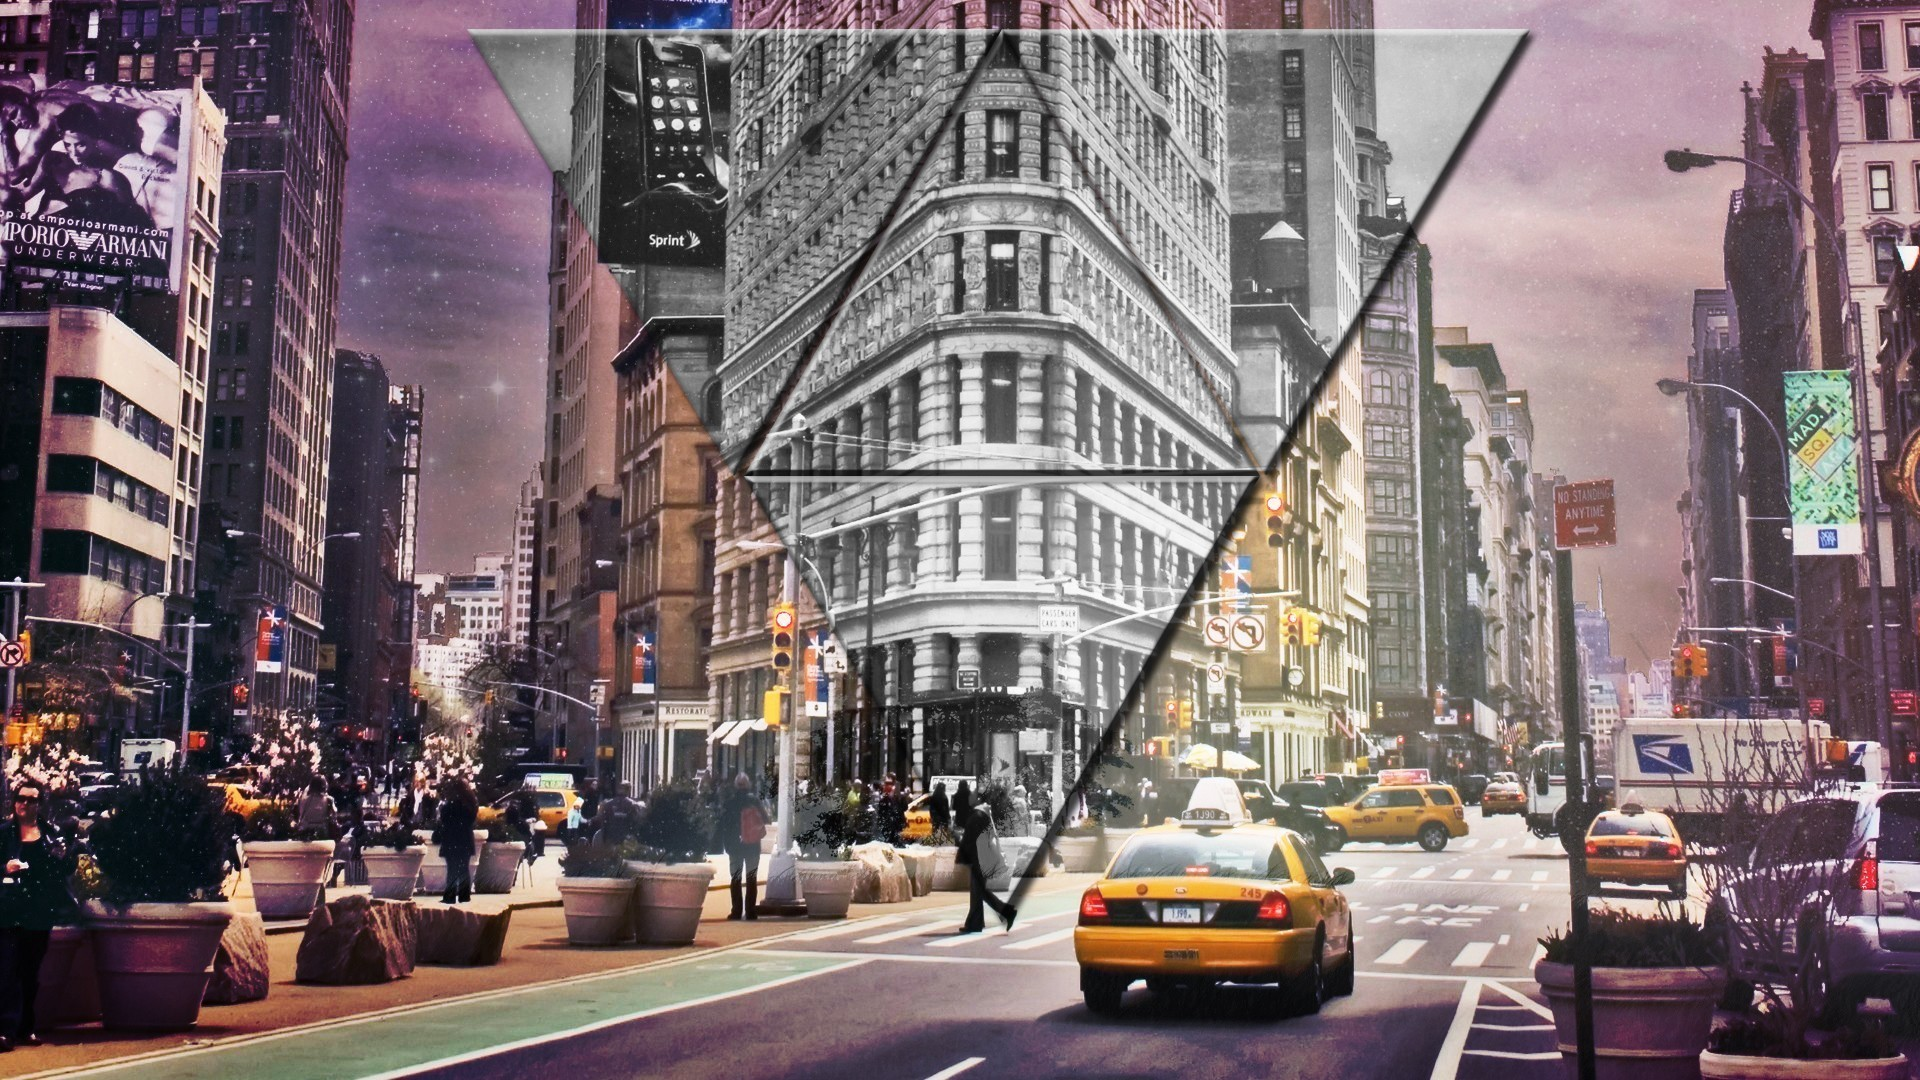 New York City, New York Taxi, Street, City, Triangle, Digital art, Purple,  Stars Wallpapers HD / Desktop and Mobile Backgrounds